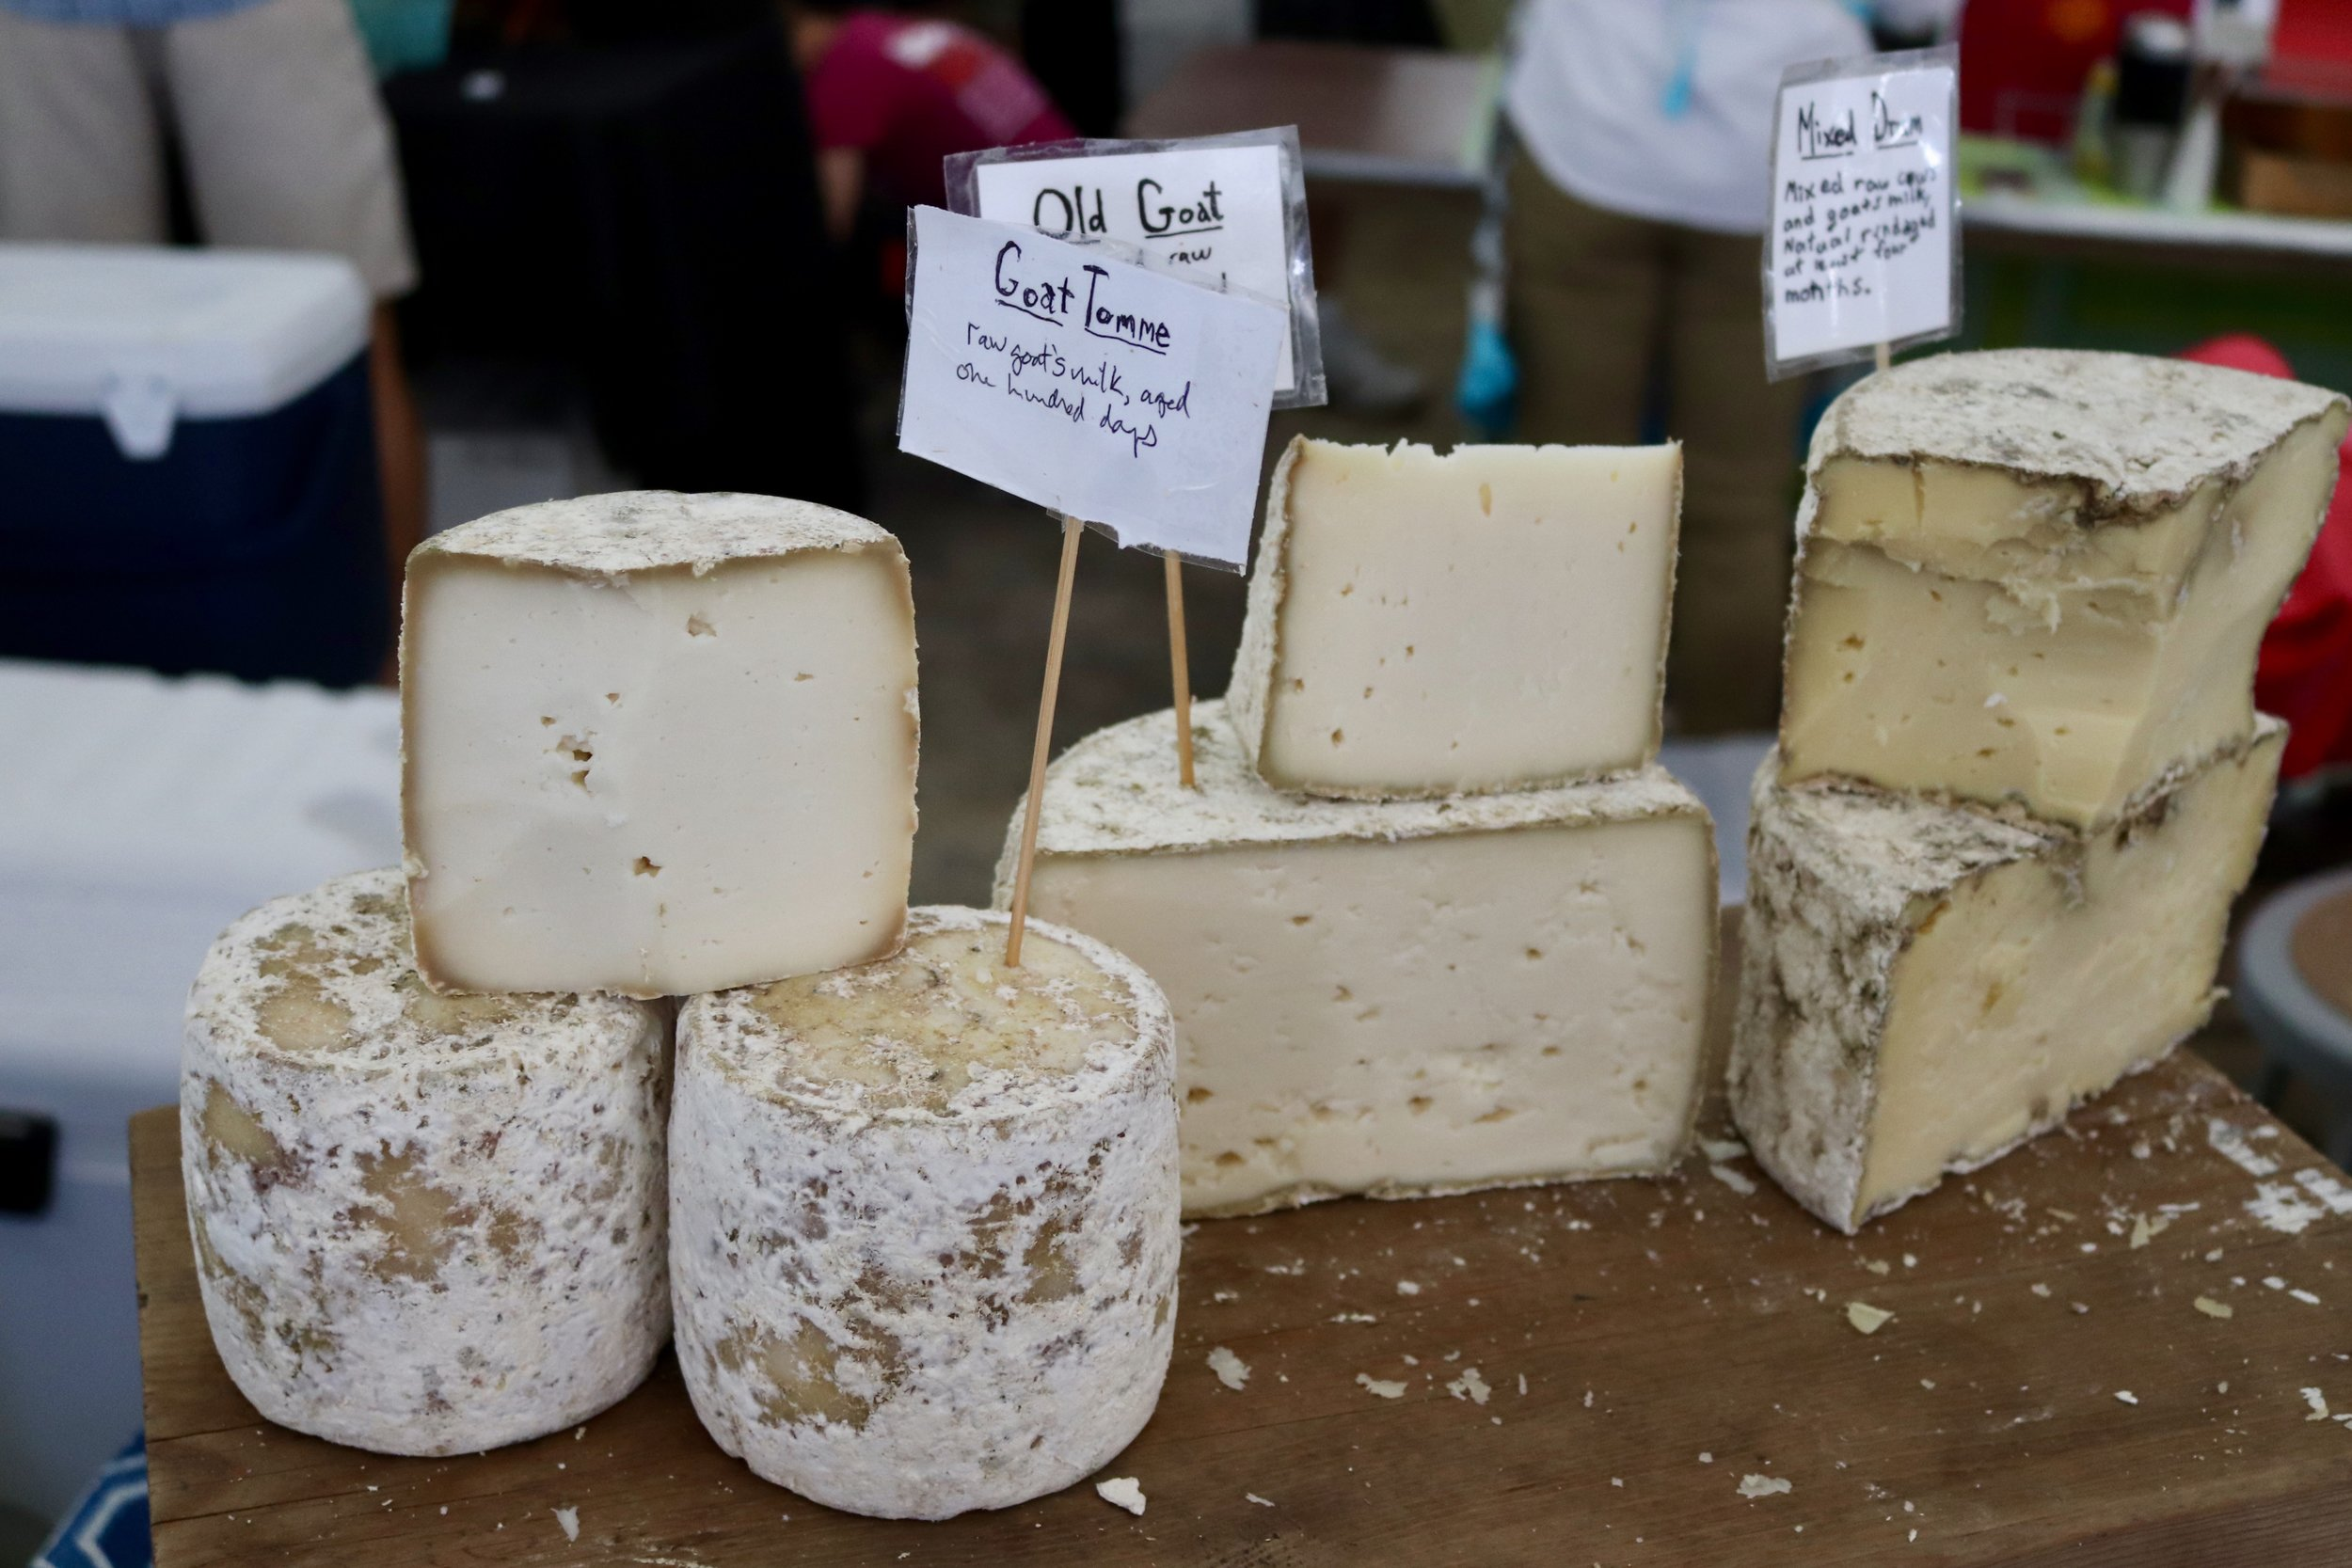 twig farm's cheese display at cheese fest